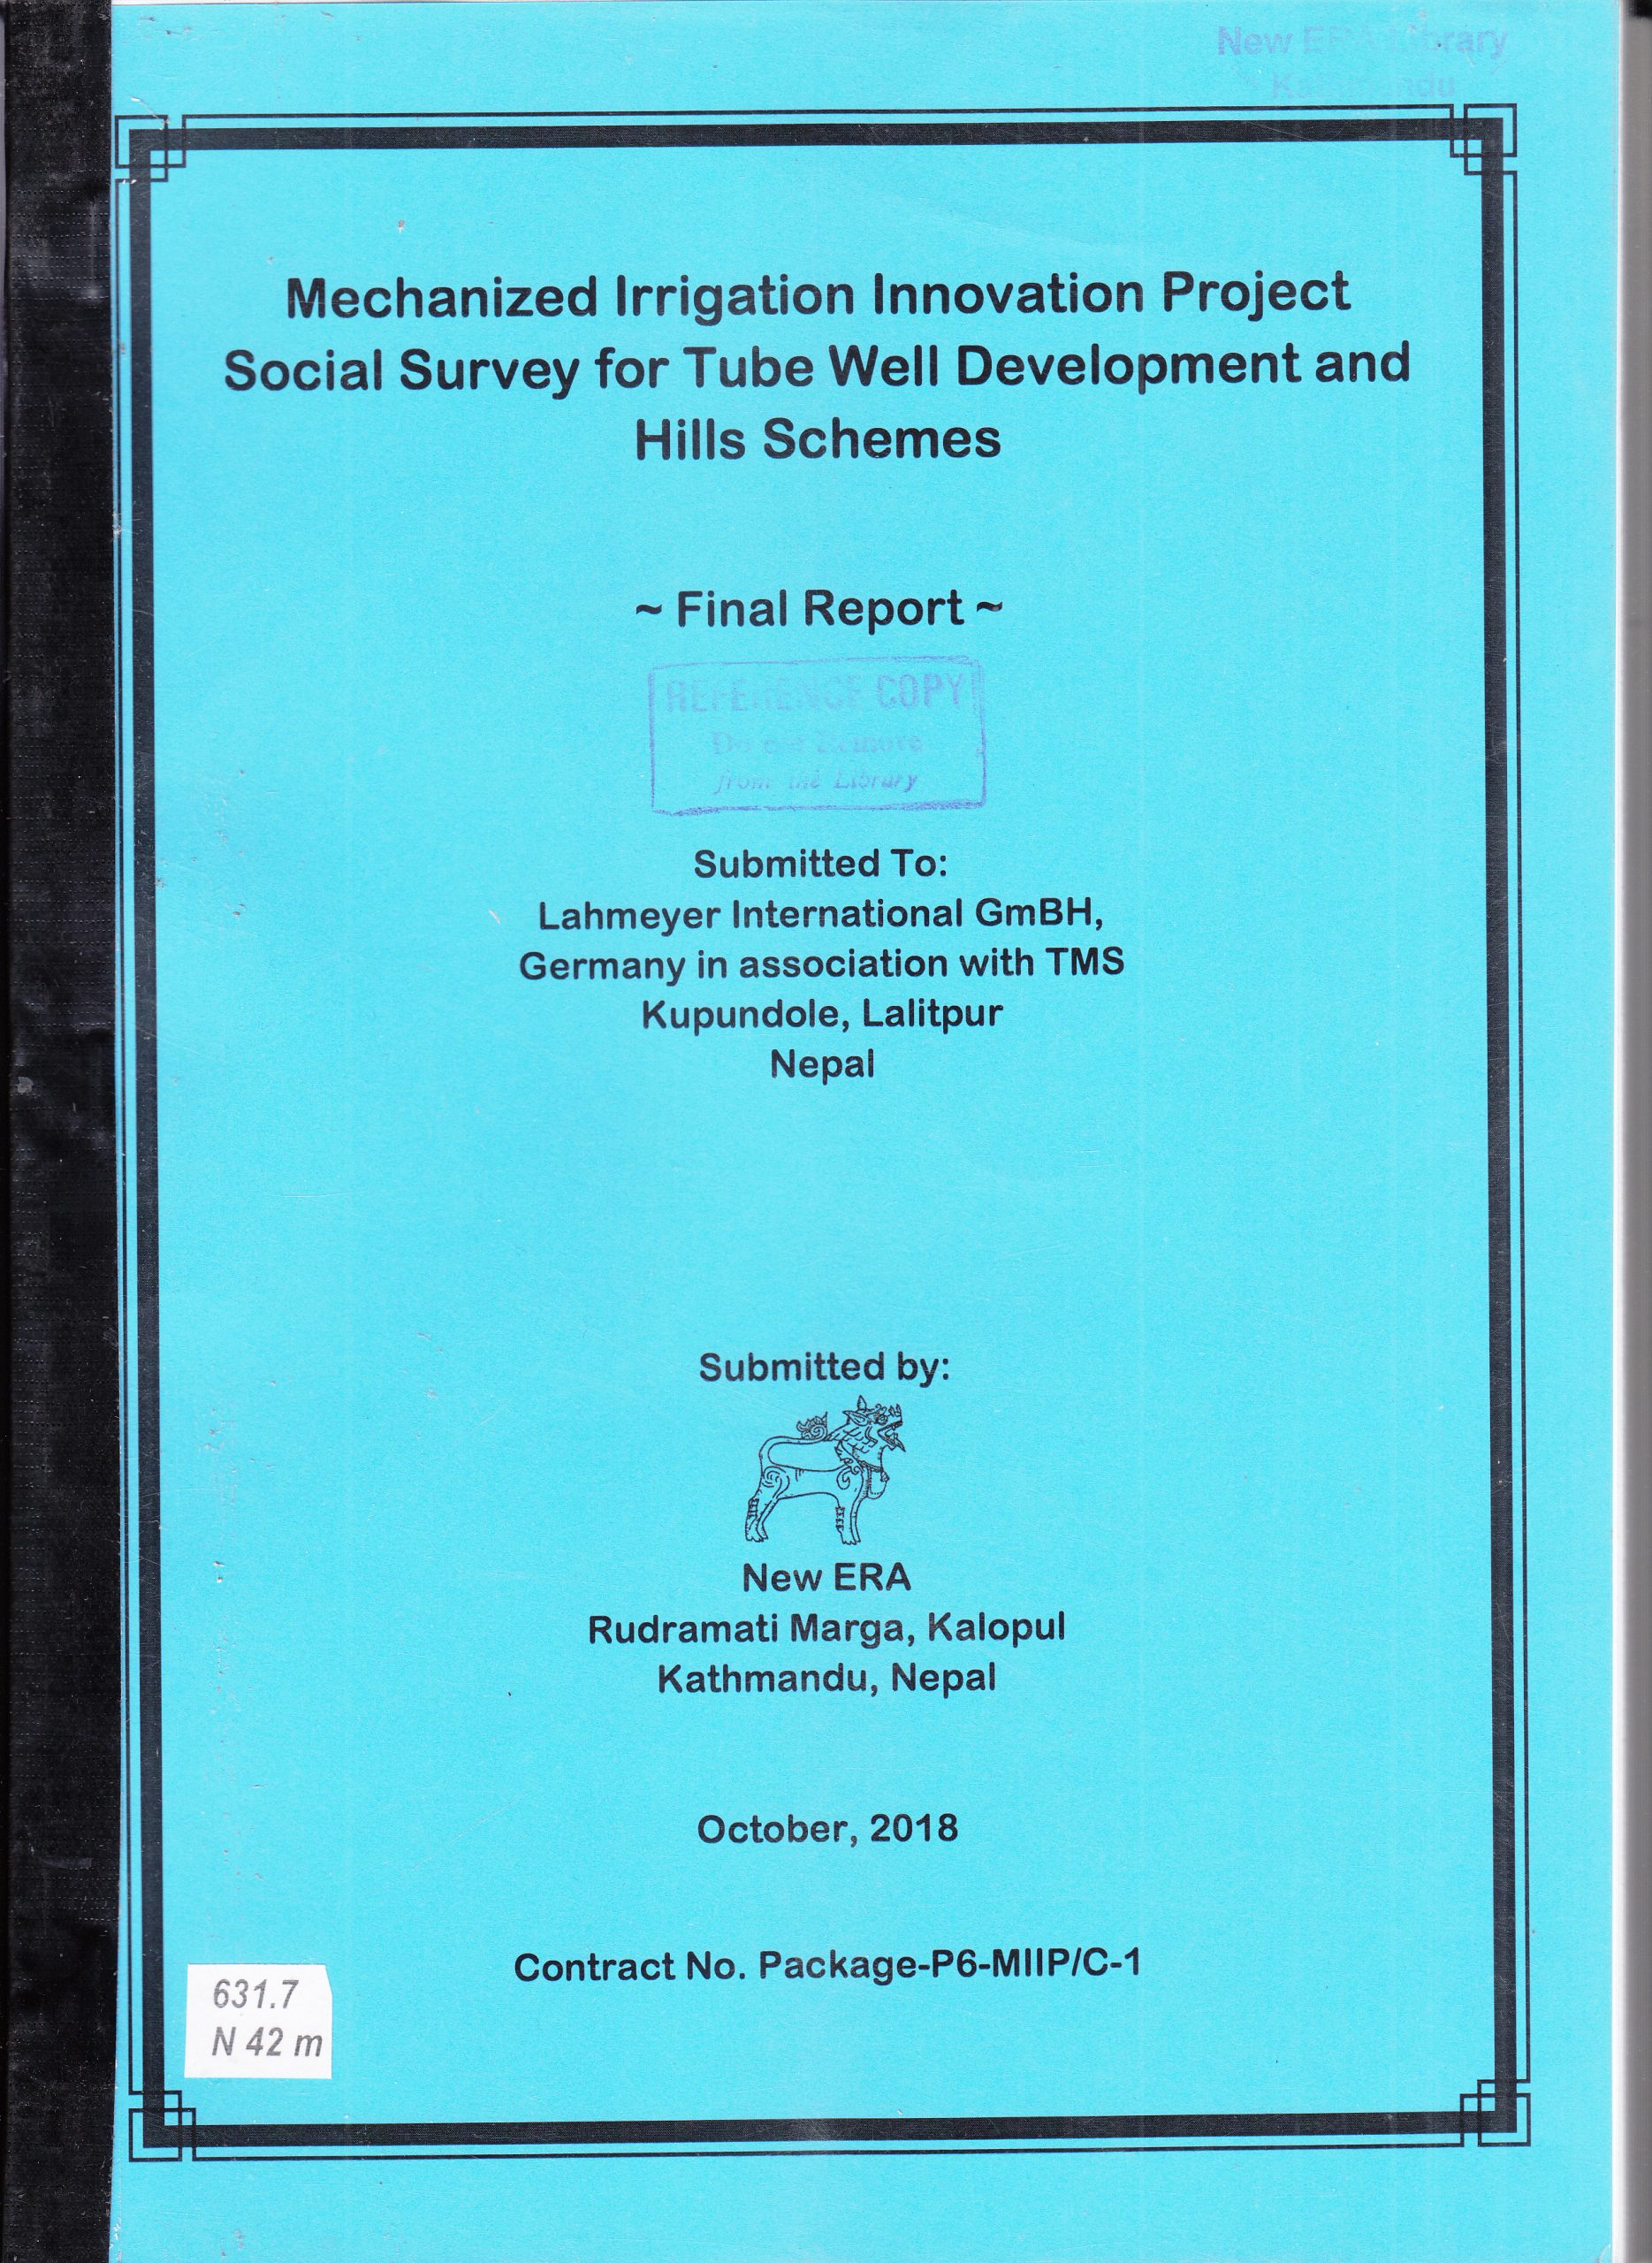 Mechanized Irrigation Innovation Project – Social Survey for Tube Well Development and Hills Schemes